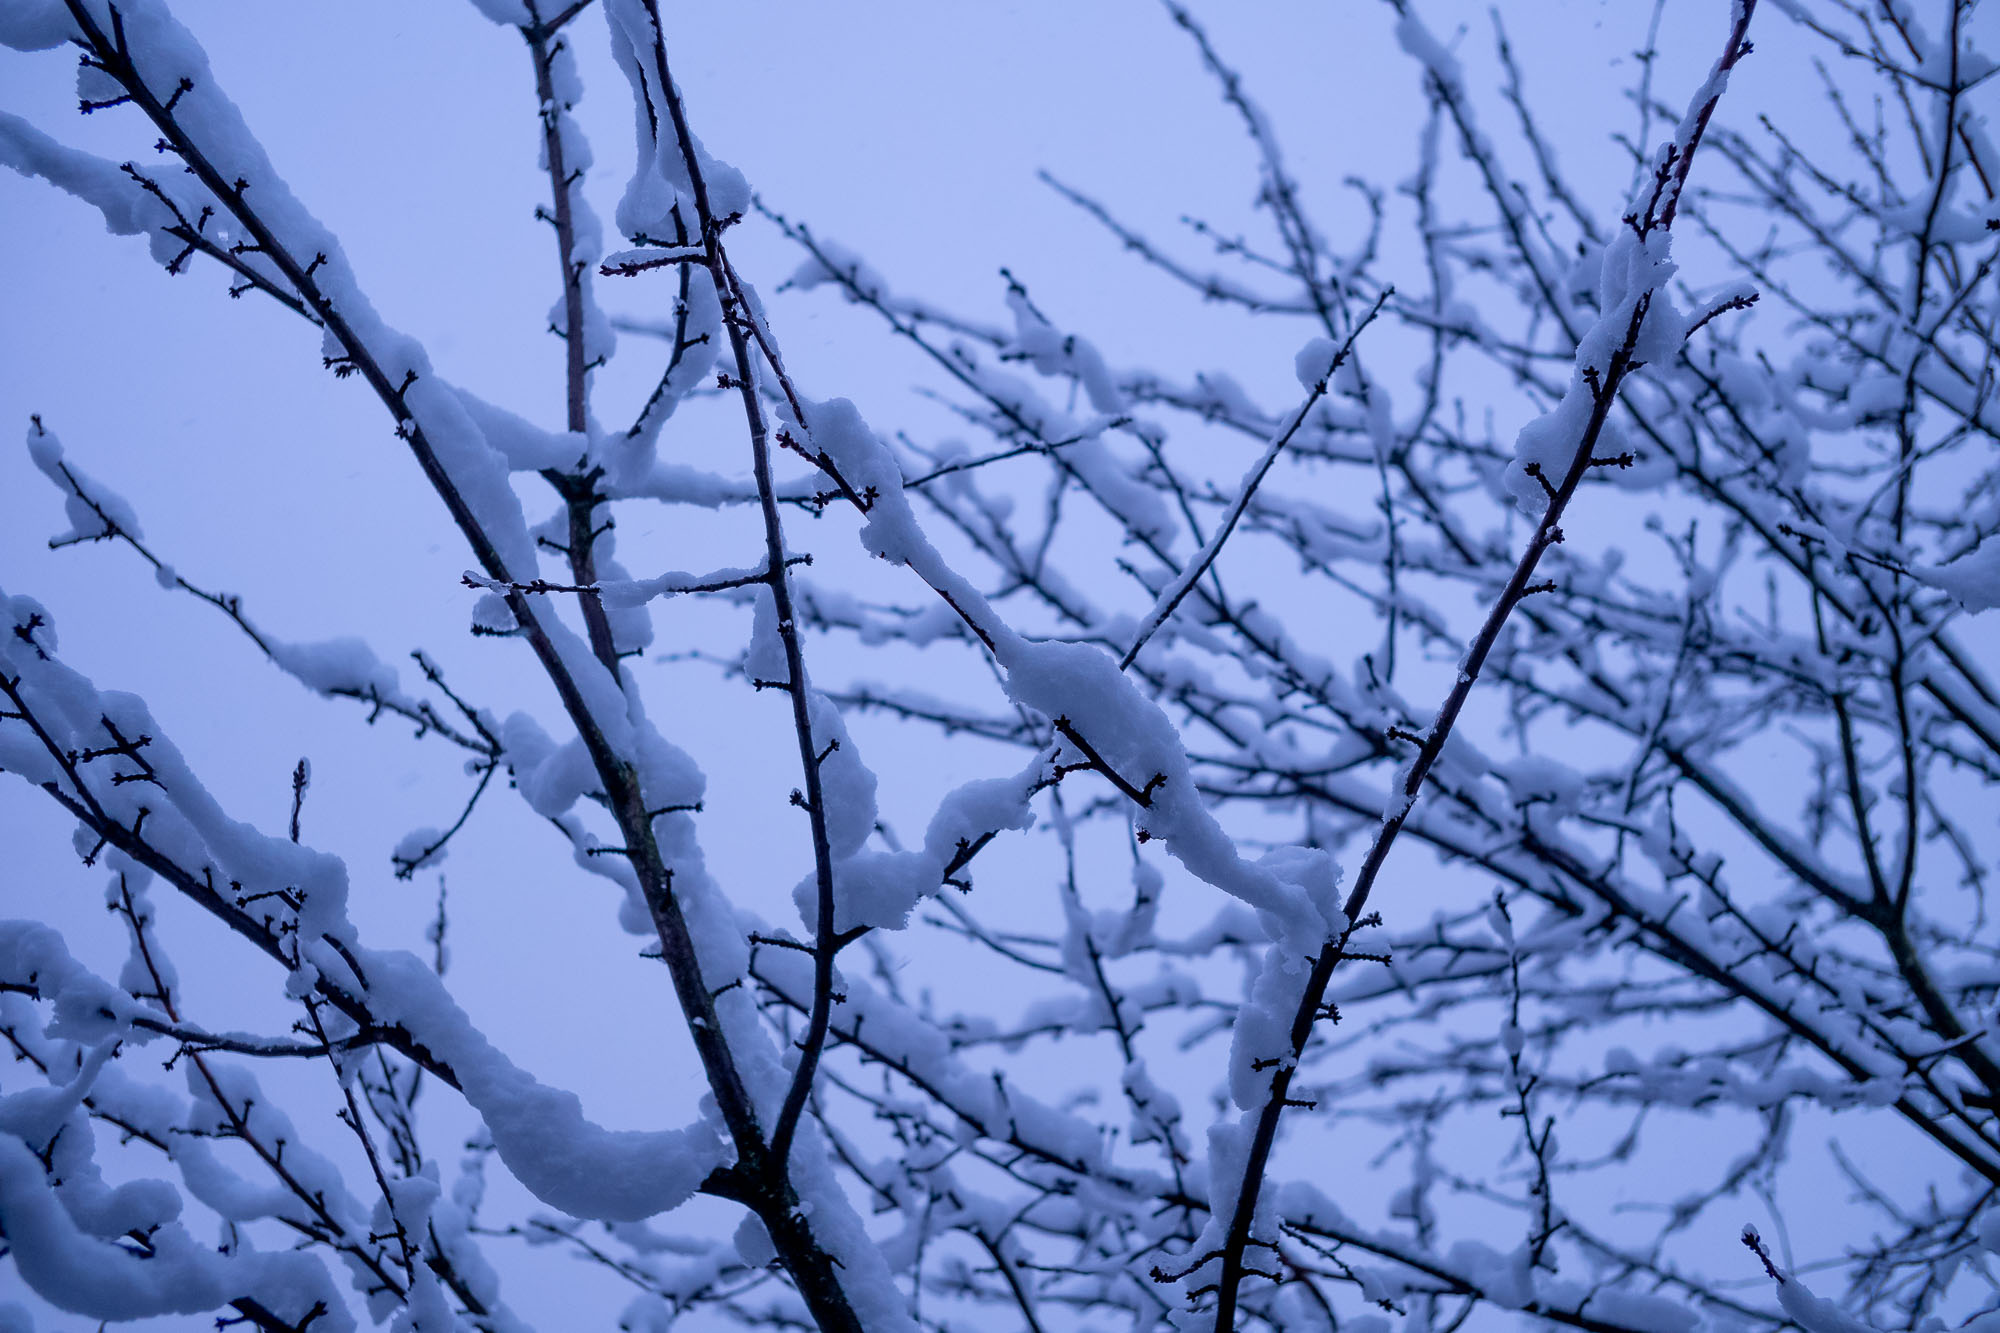 Thick snow on tree branches